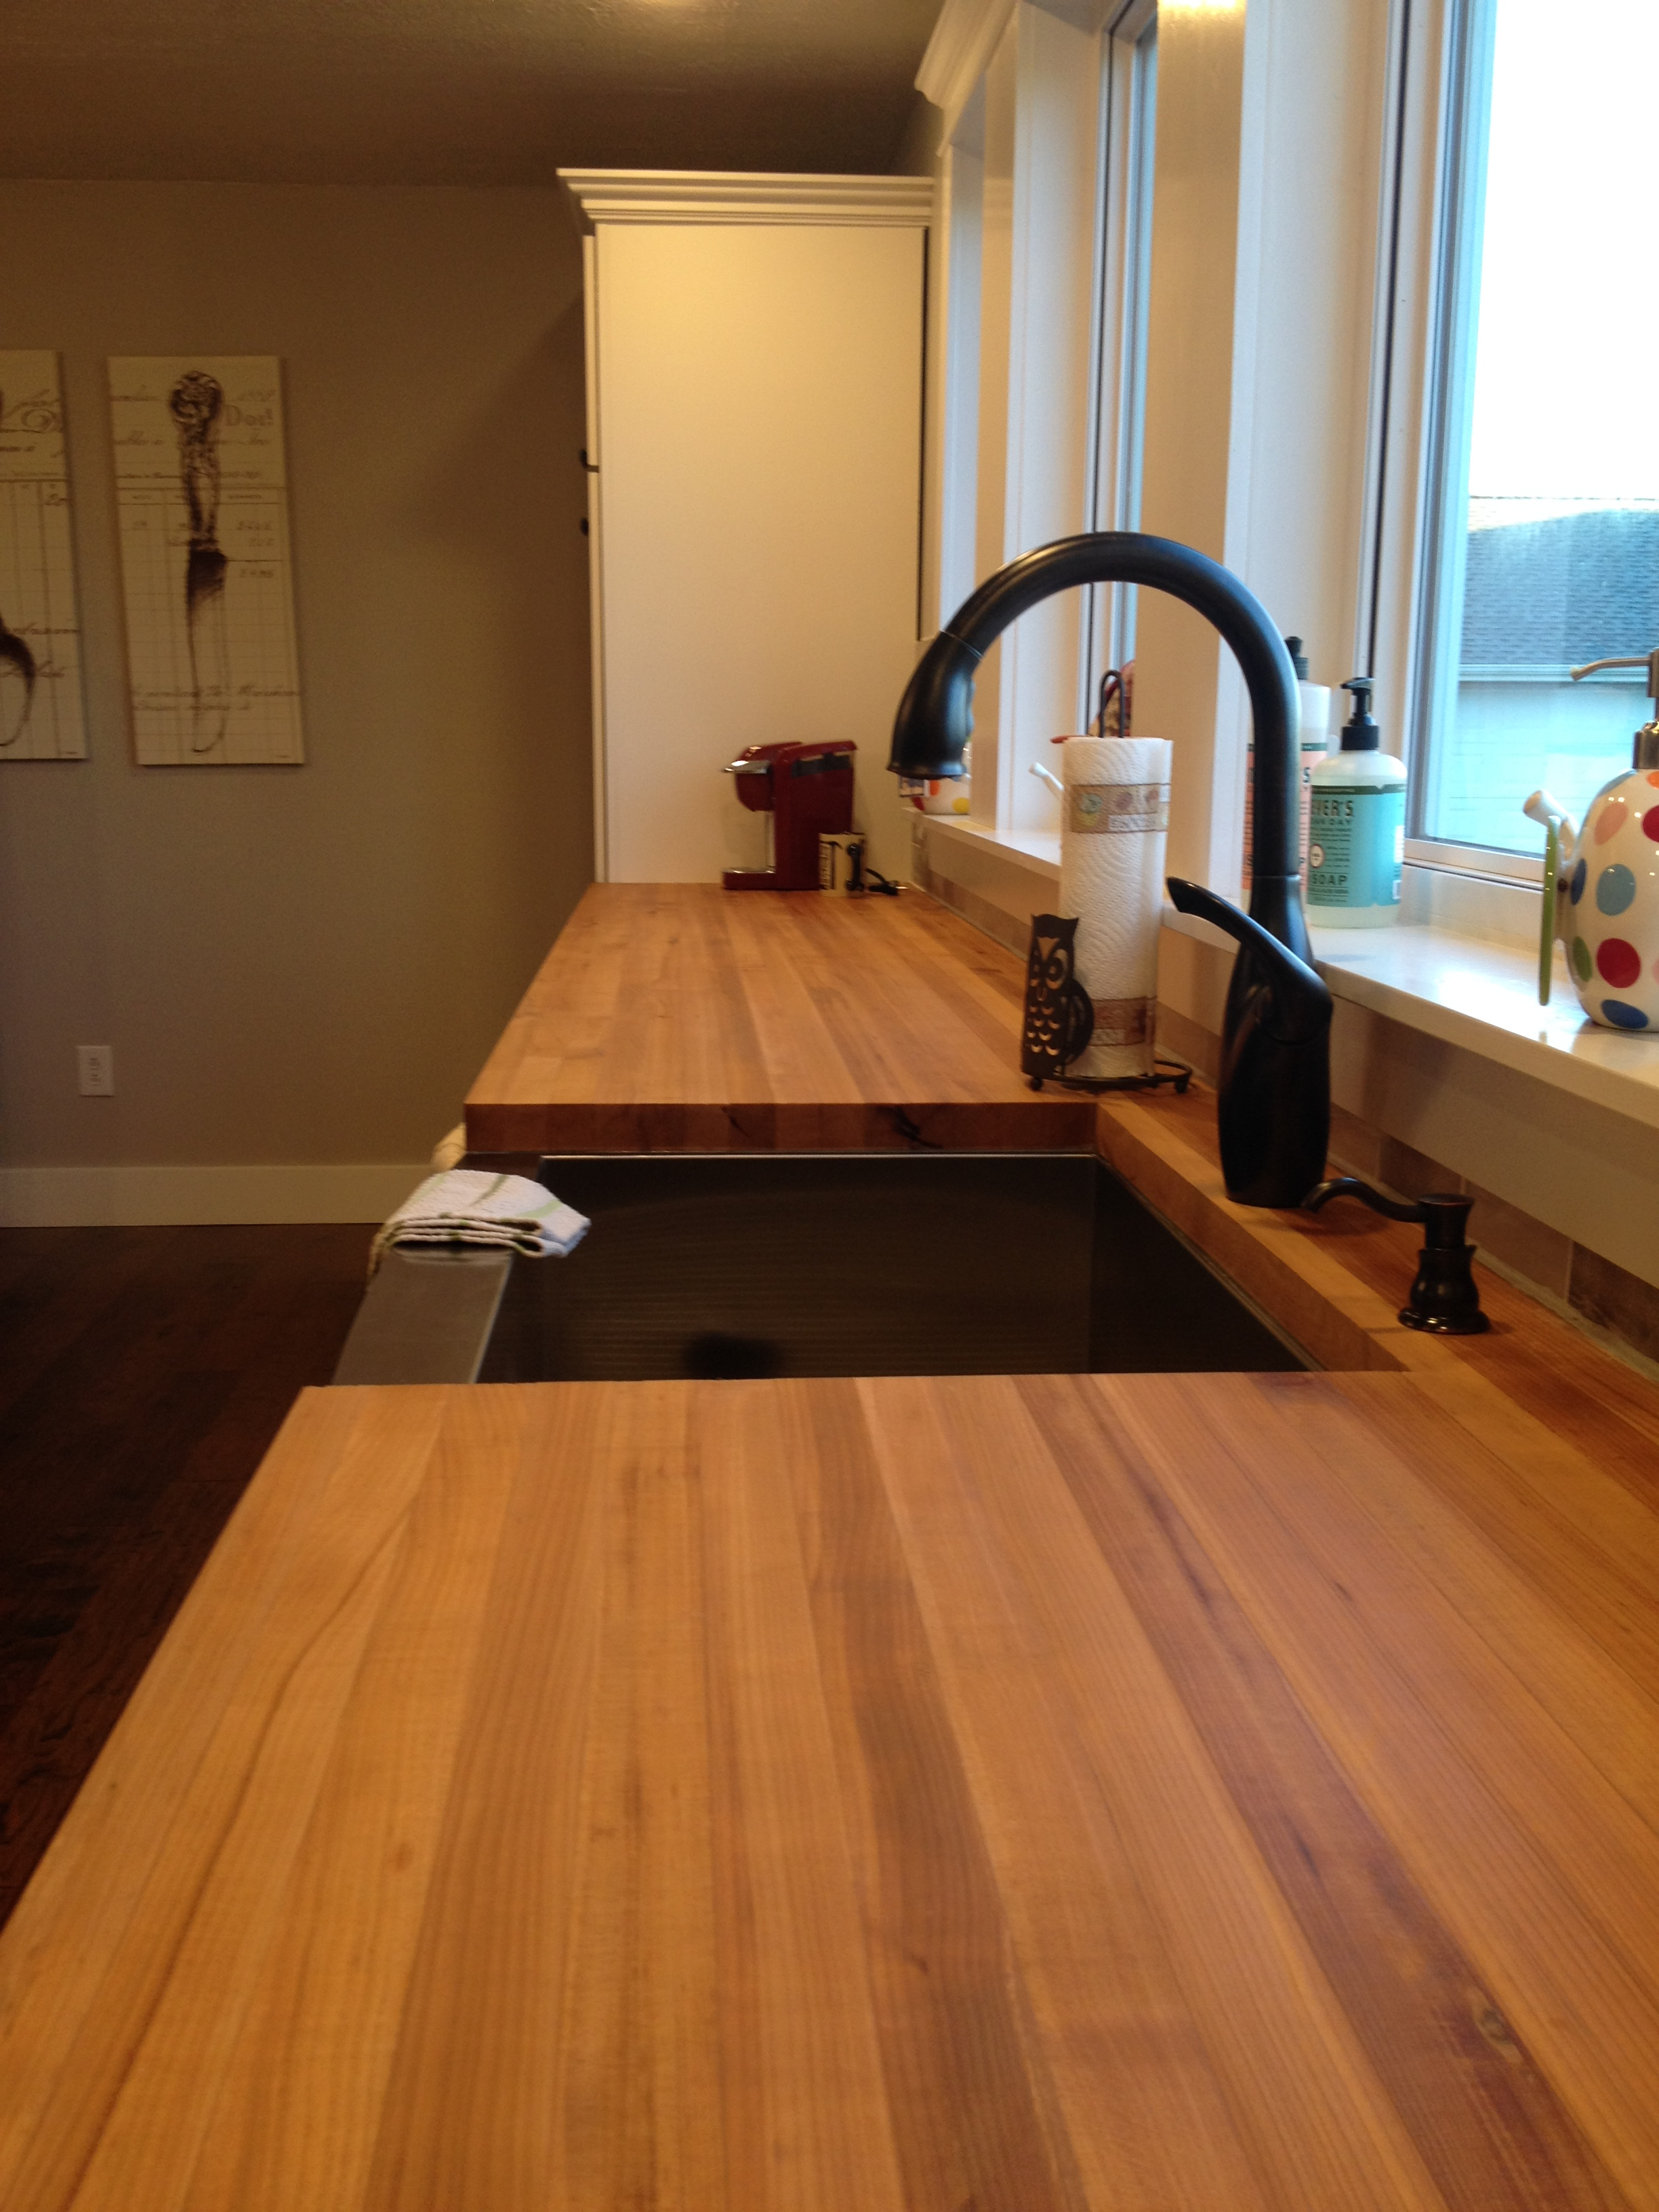 Kitchen Countertops Butcher Block